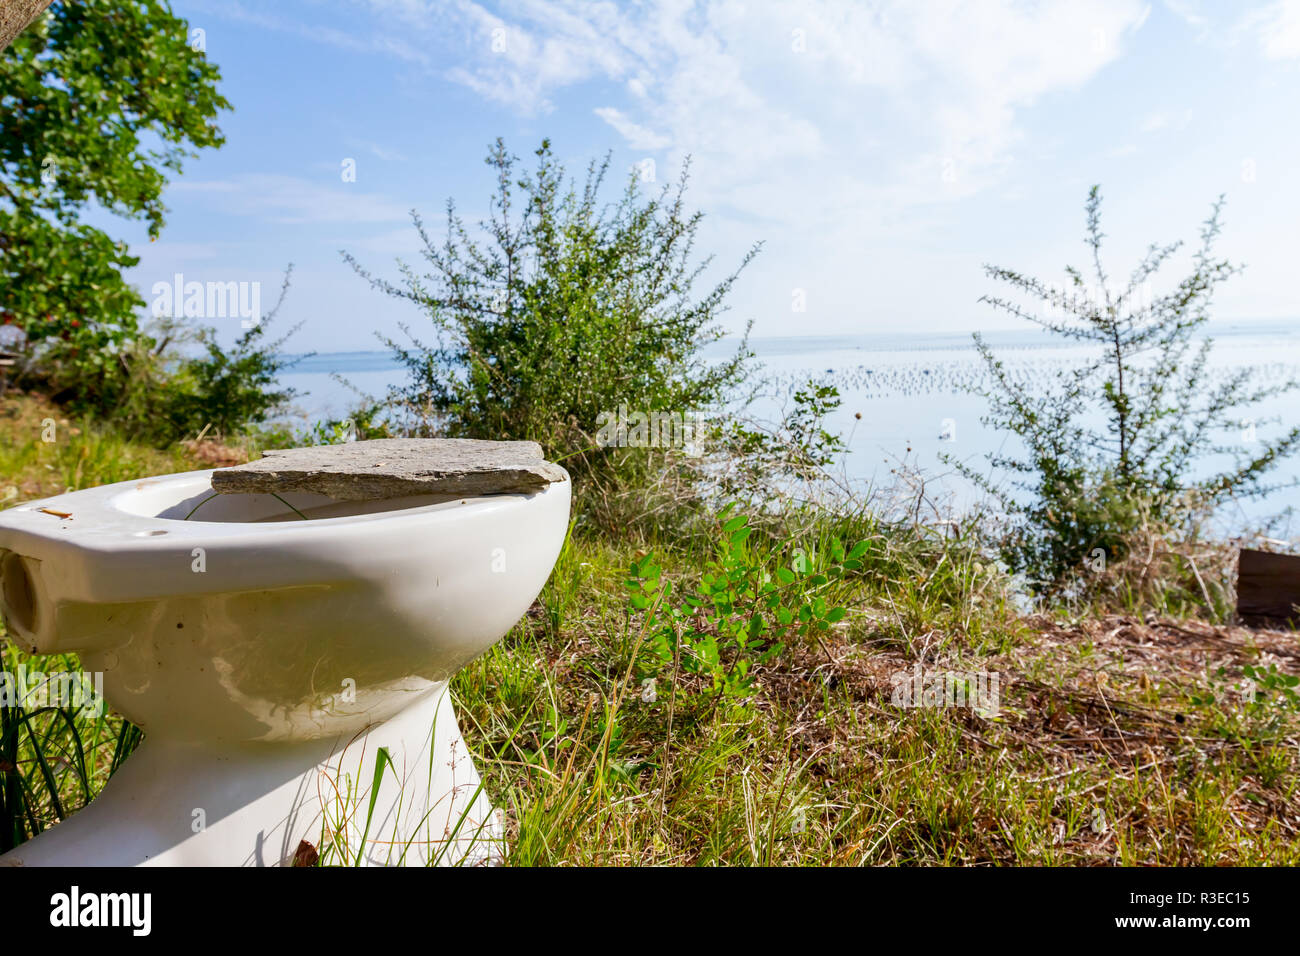 Ceramic old toilet bowl is in the orchard, field high above